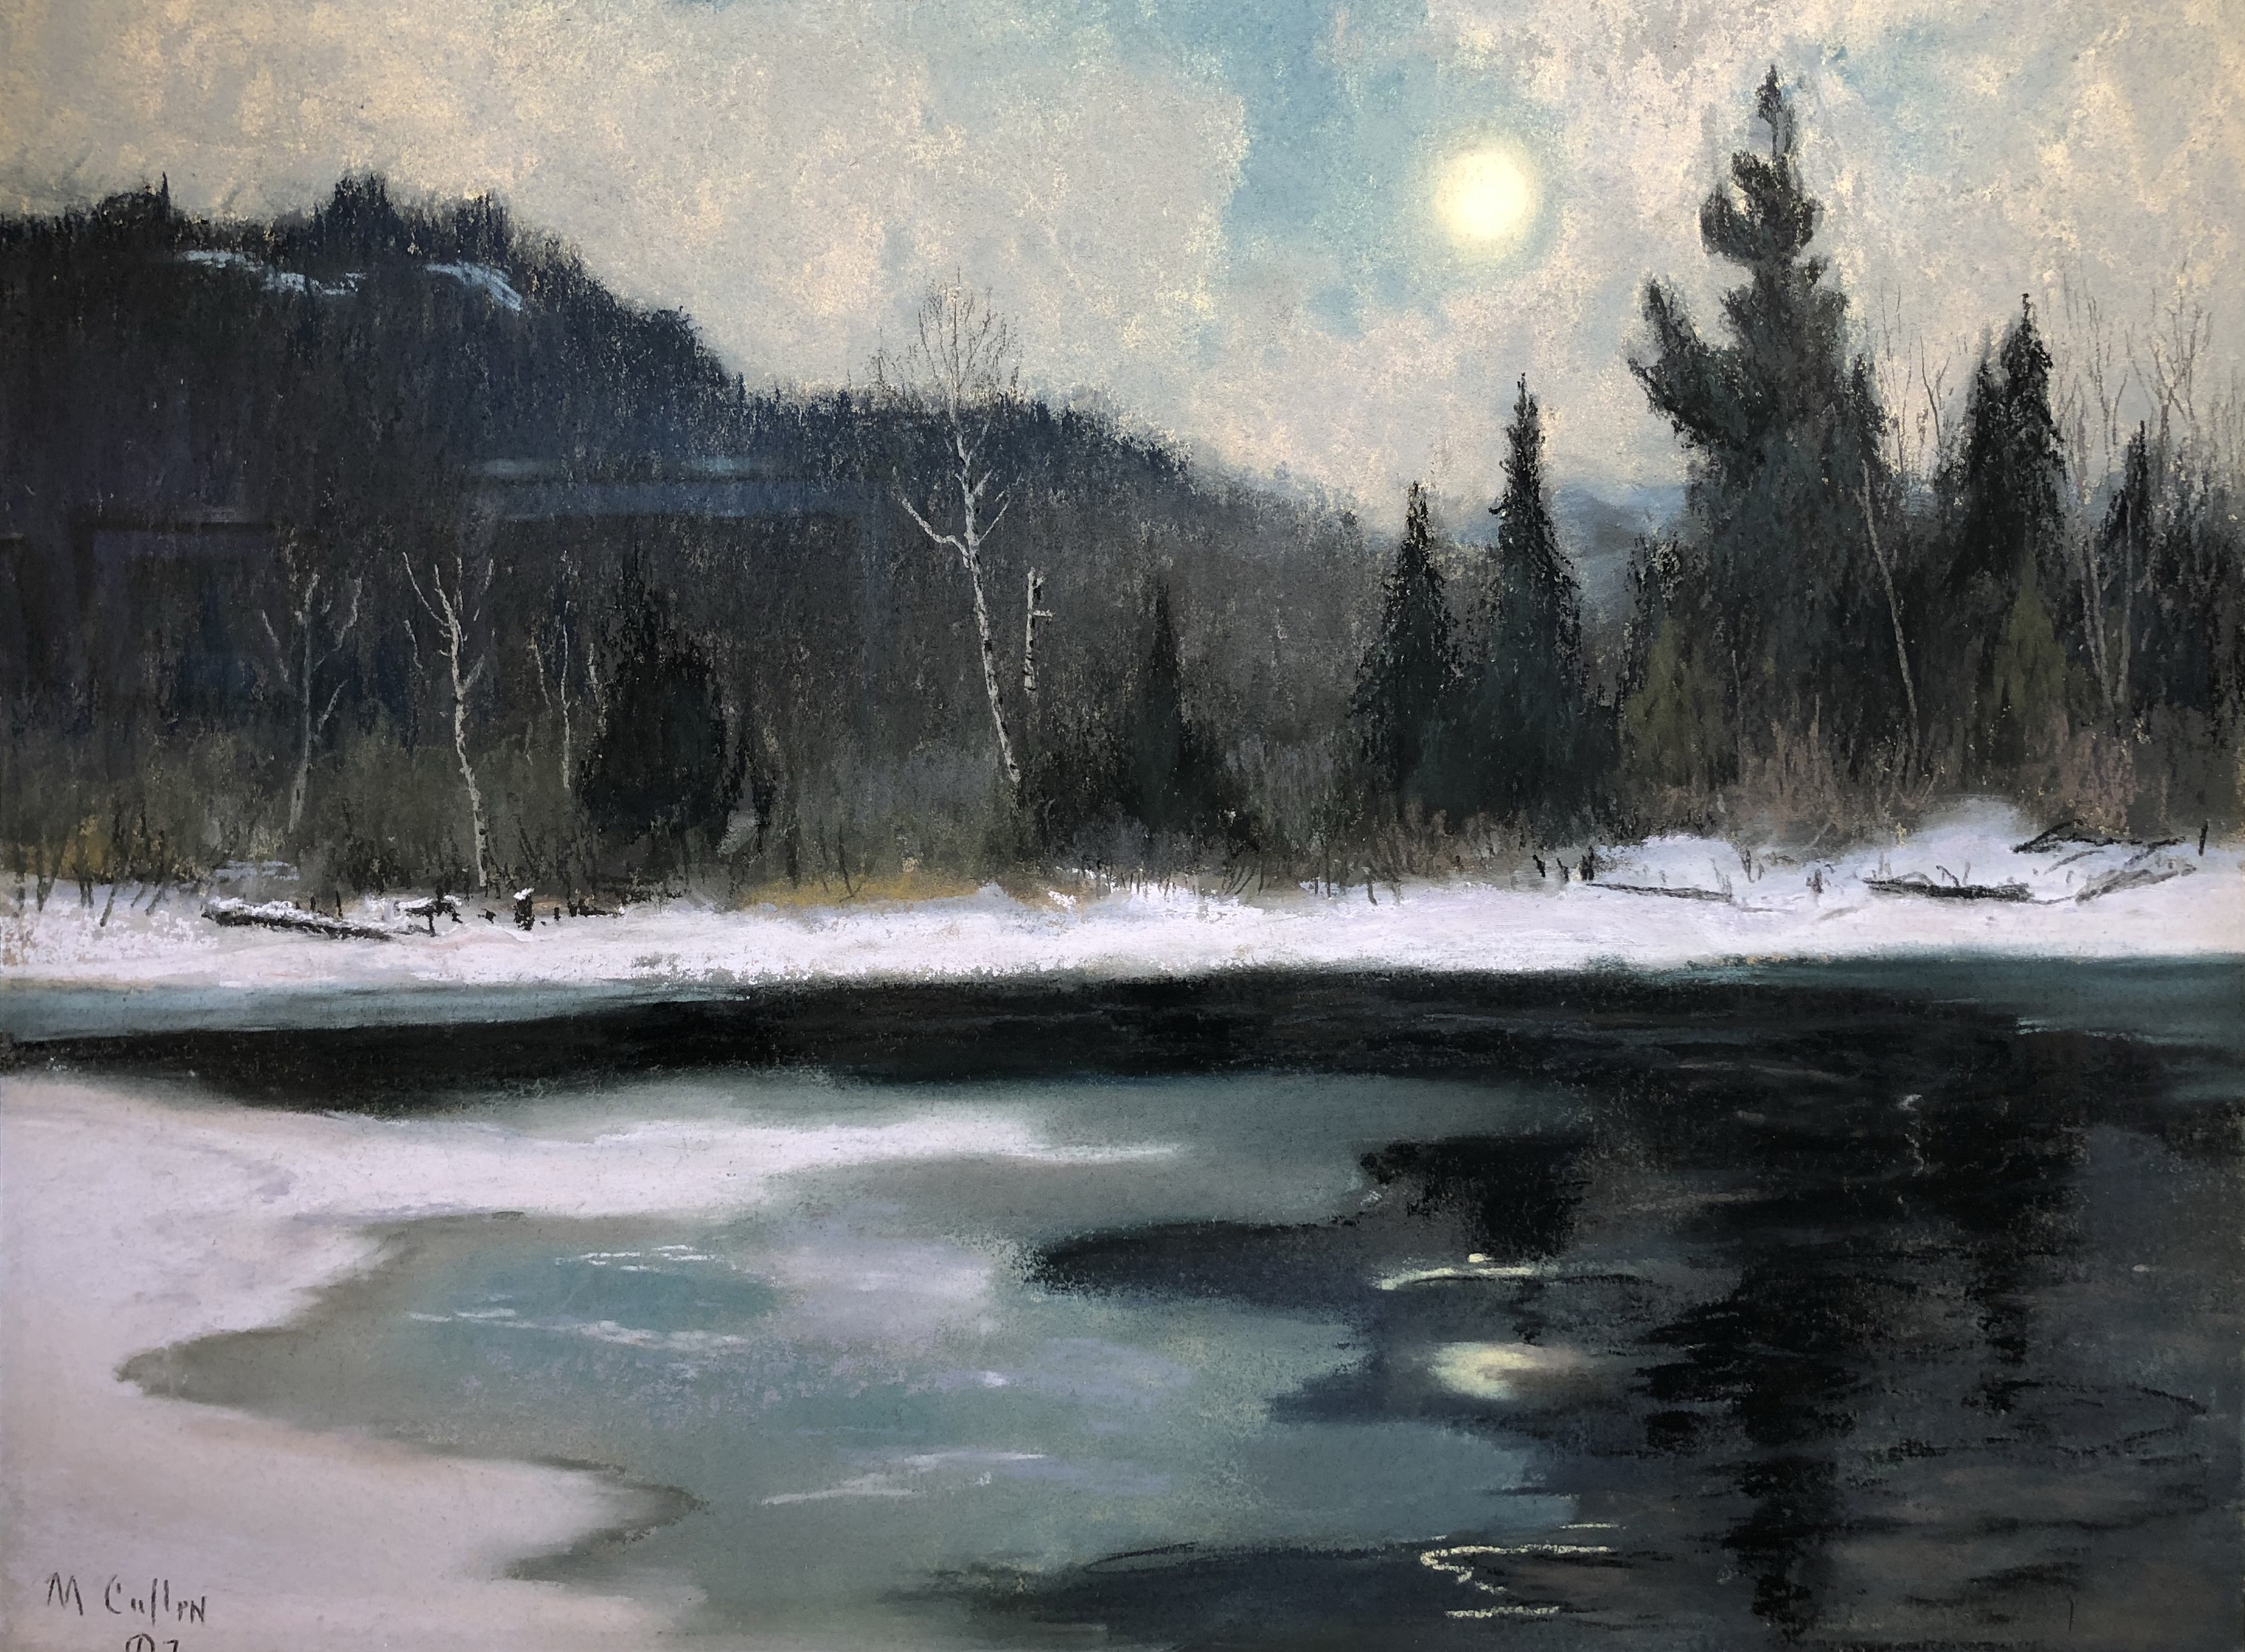 Maurice Cullen, Early Spring on Cache River, c. 1925